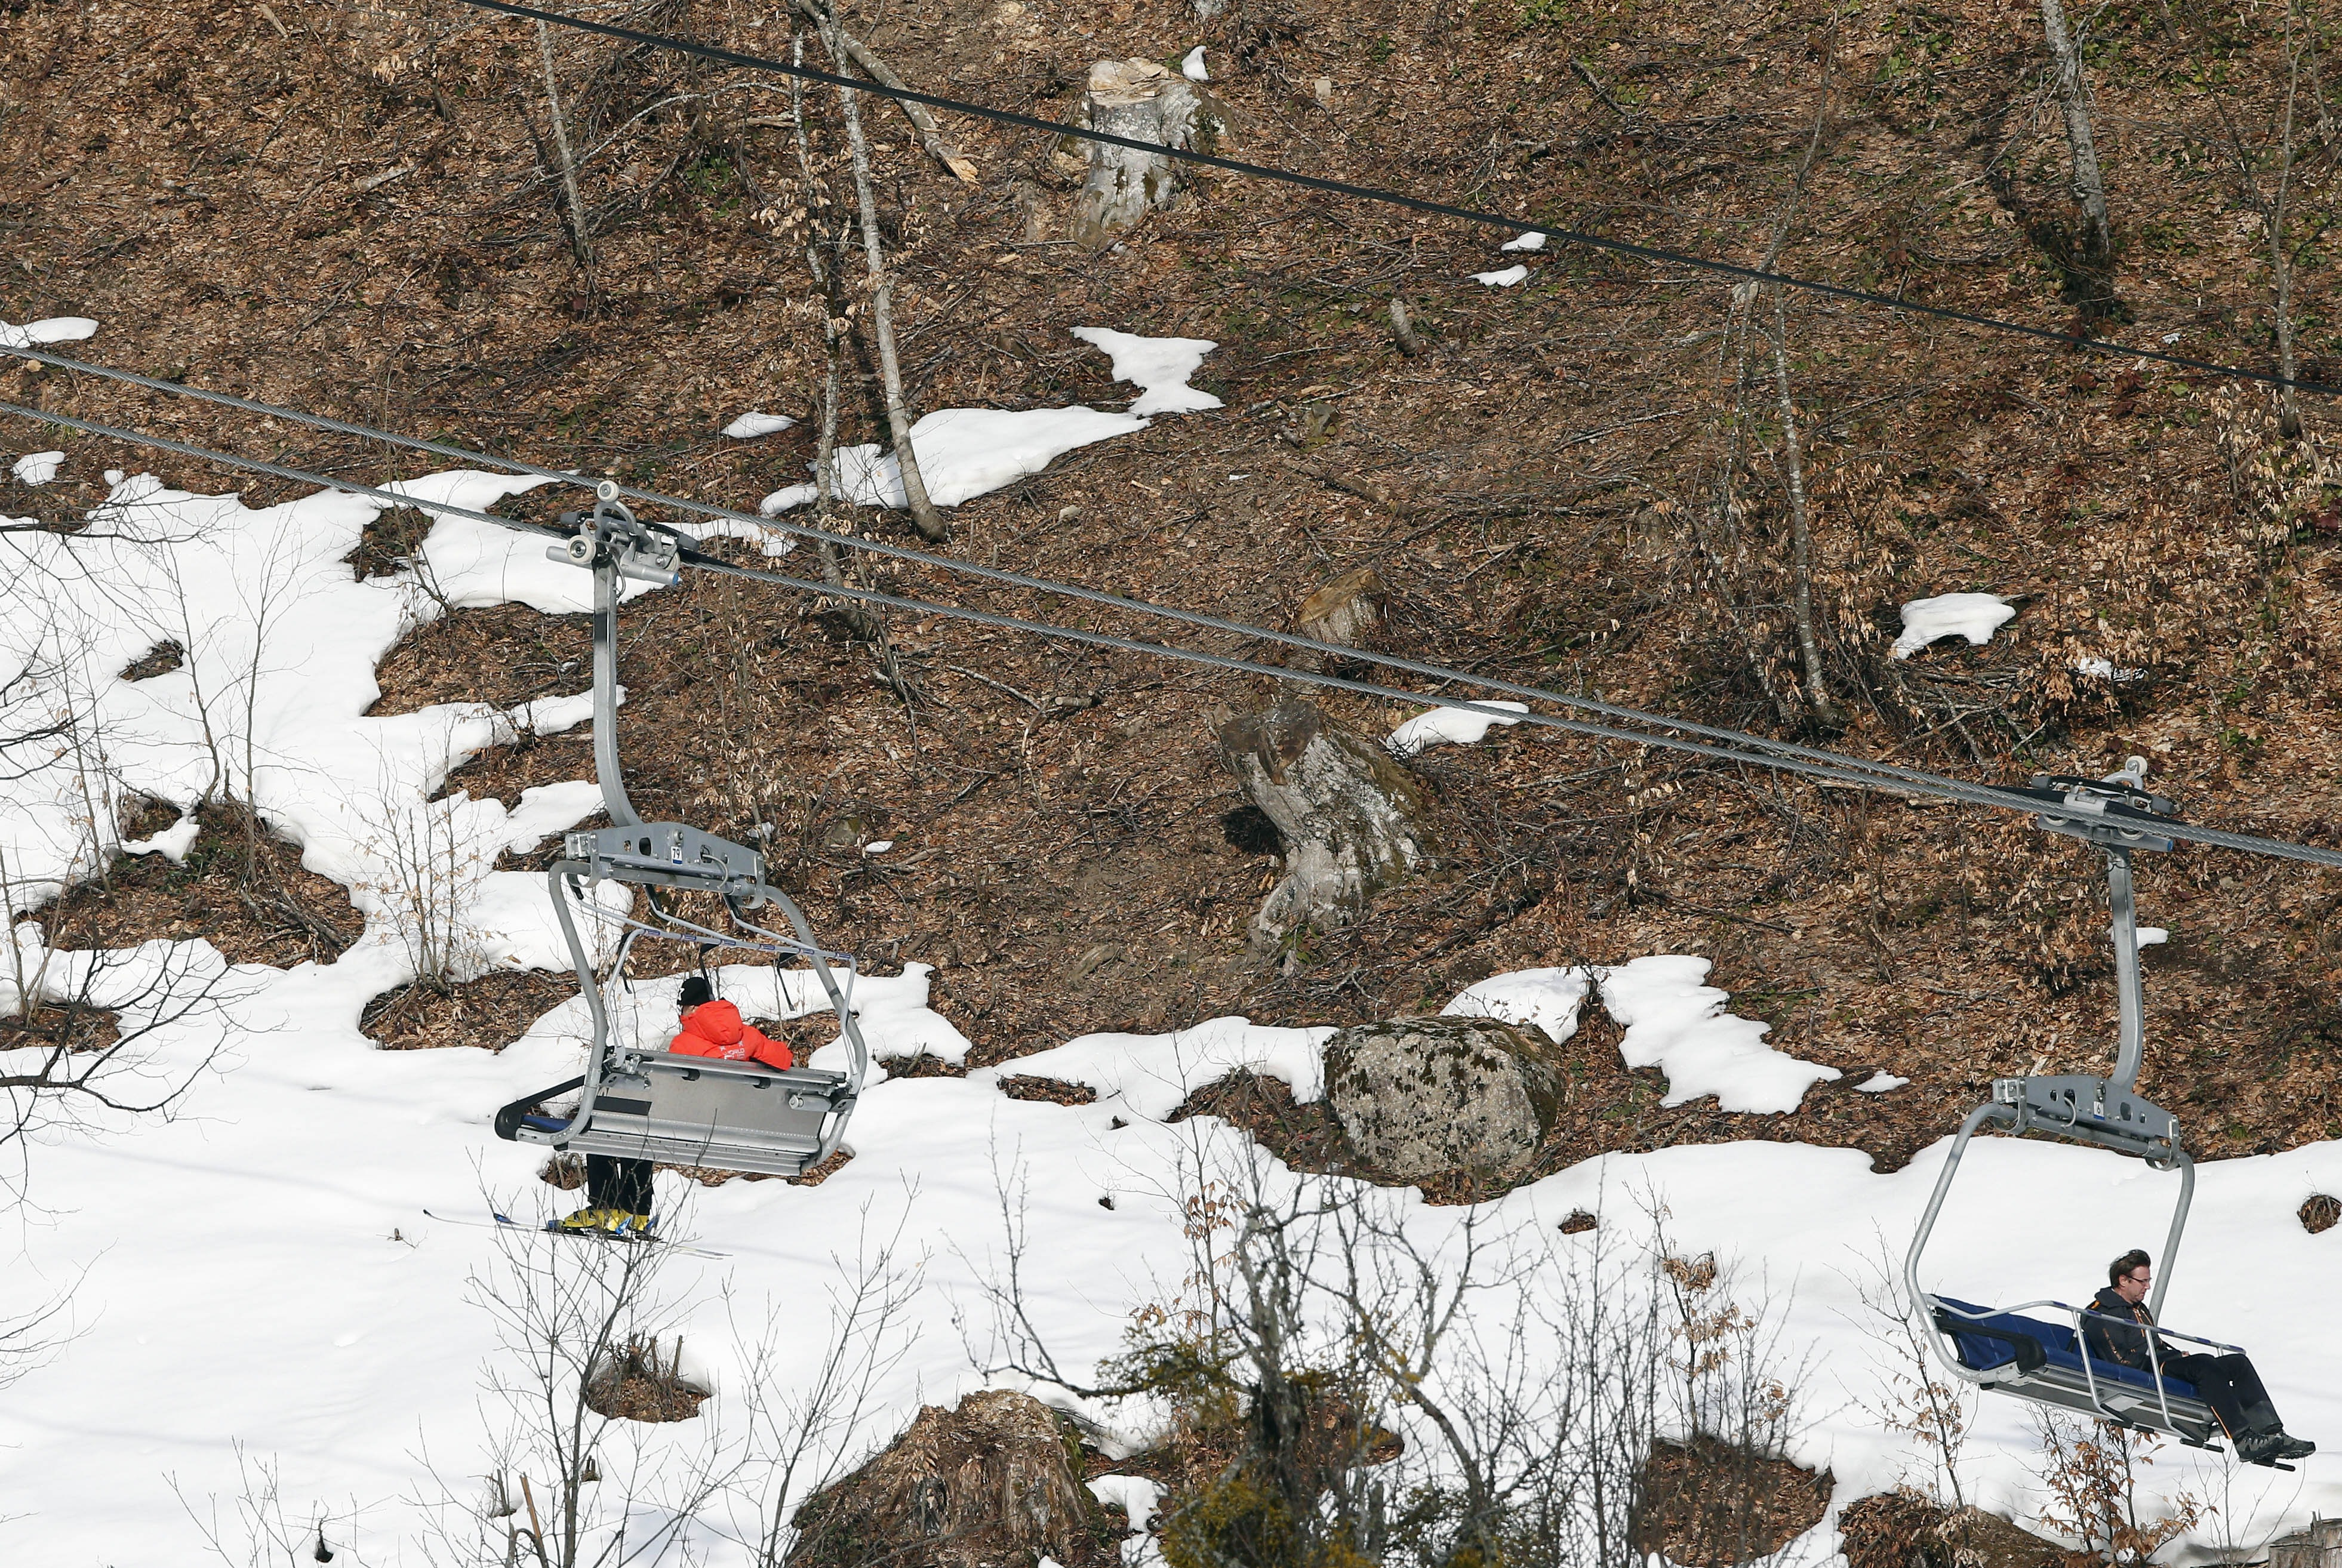 People take a ski lift past patches of snow at the Sochi 2014 Winter Olympics, Tuesday, Feb. 11, 2014, in Krasnaya Polyana, Russia. Warm temperatures in the mountains was a factor in the cancellation of Women's downhill training on Tuesday. (AP Photo/Christophe Ena)